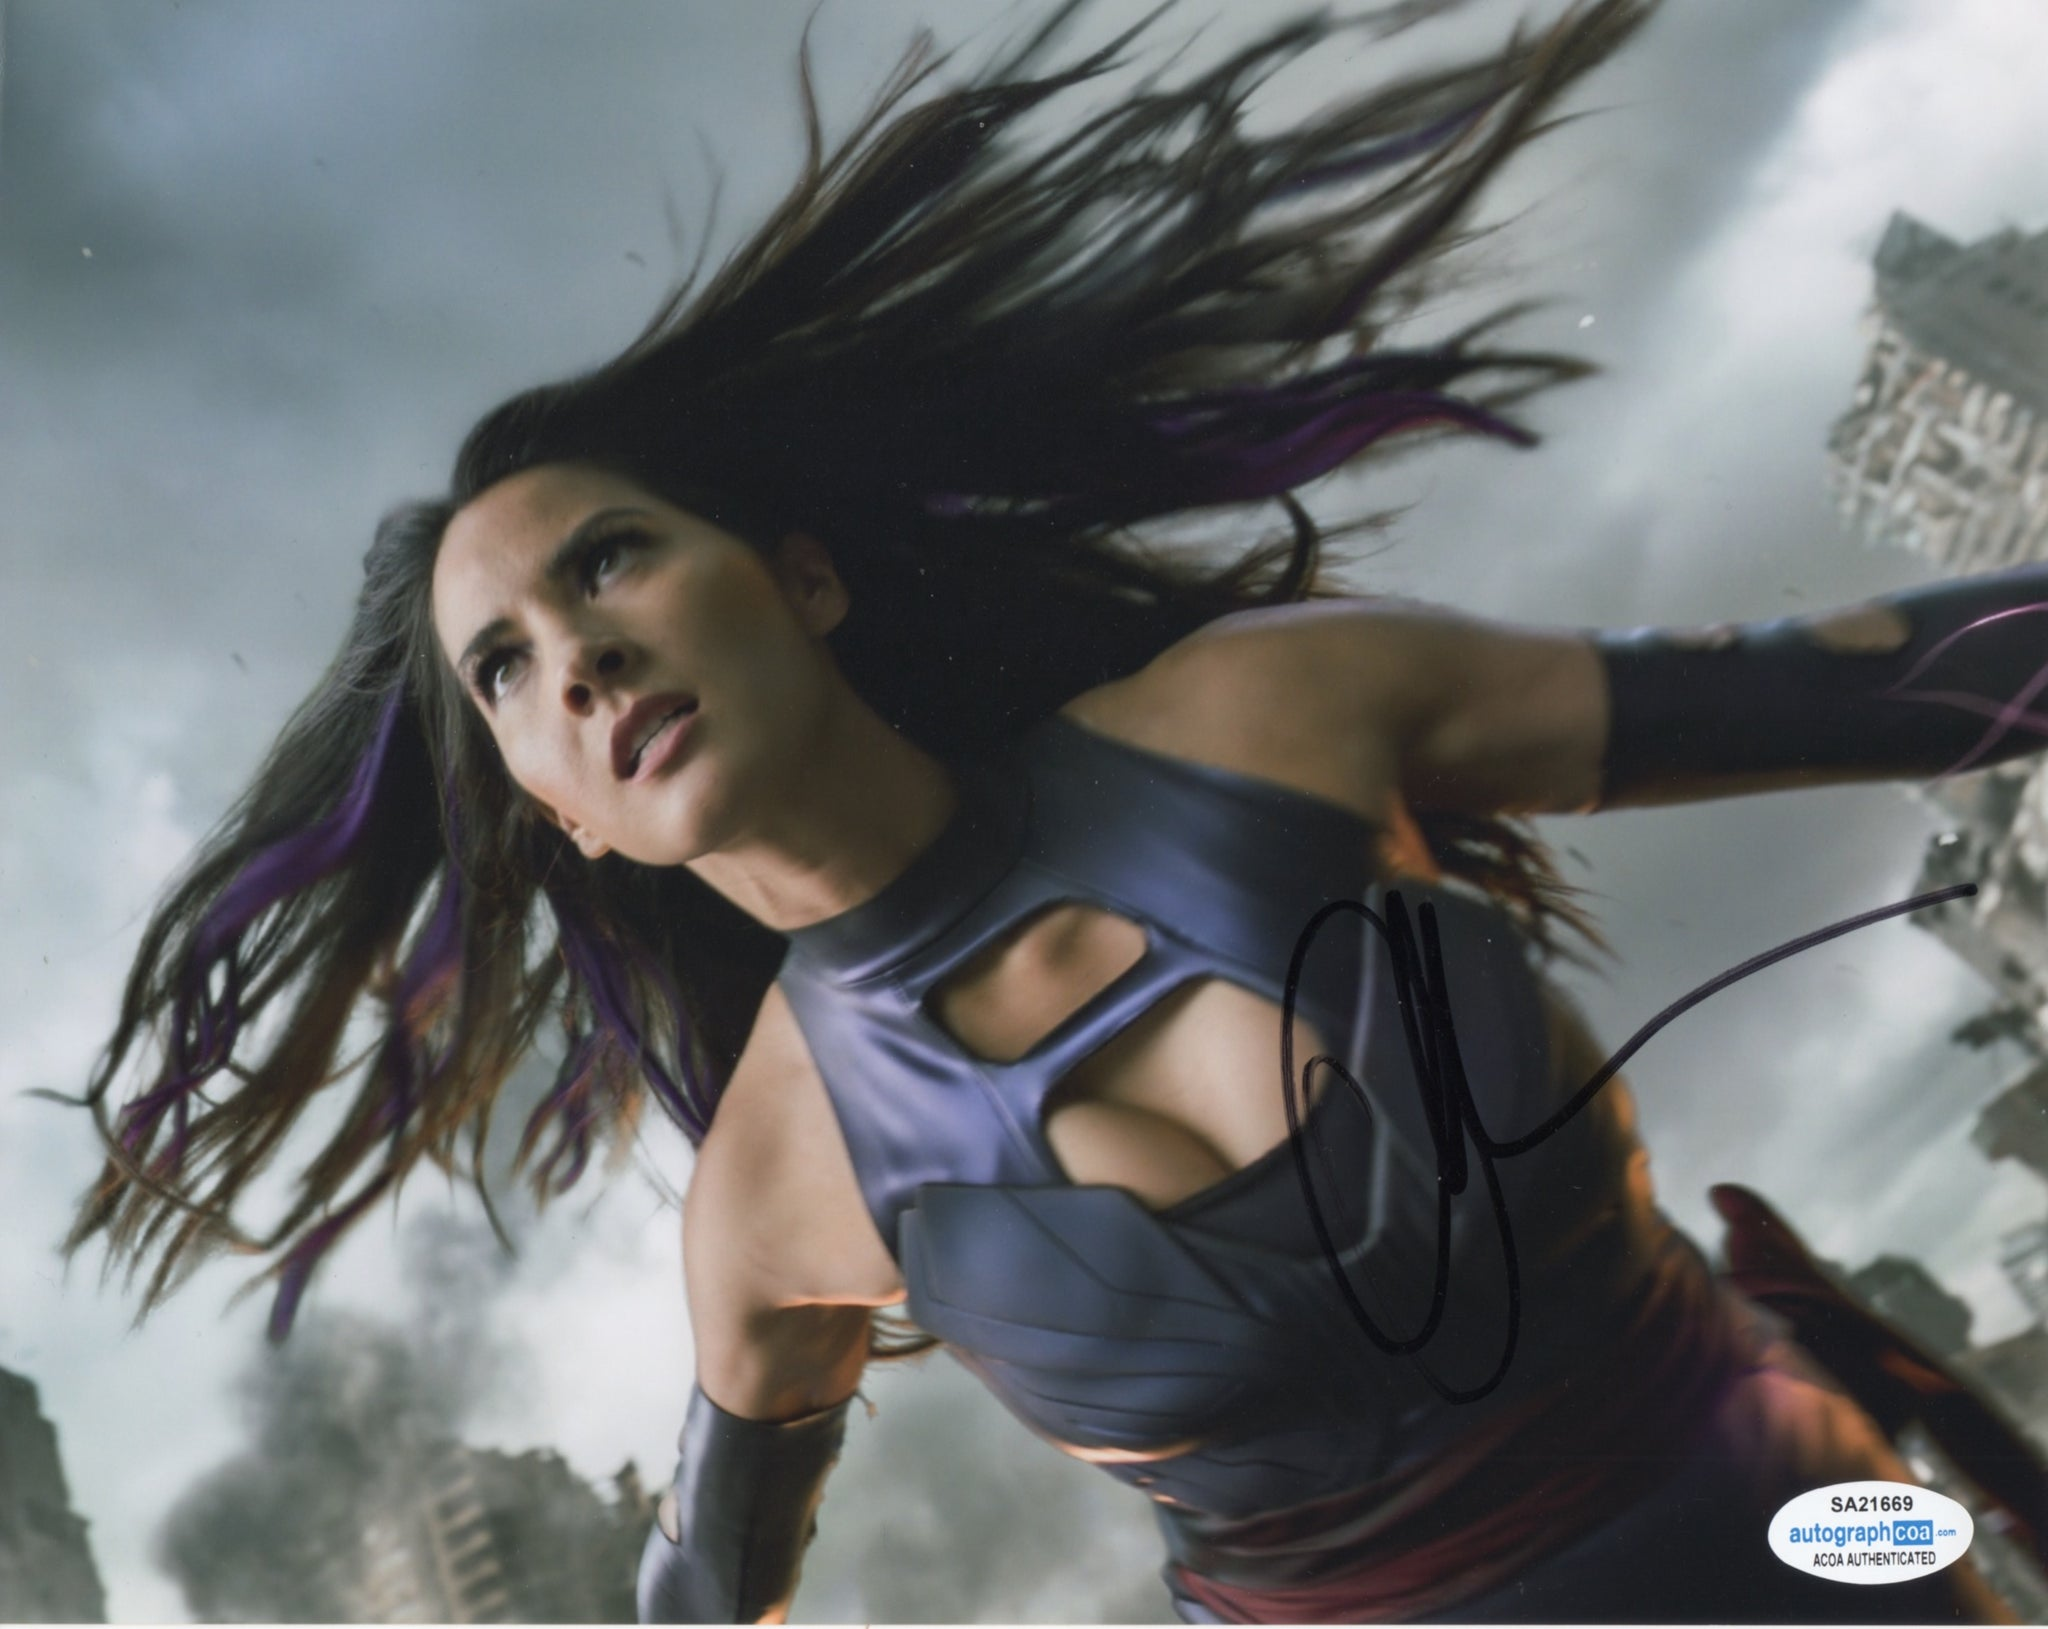 Olivia Munn XMen Signed Autograph 8x10 Photo ACOA - Outlaw Hobbies Authentic Autographs